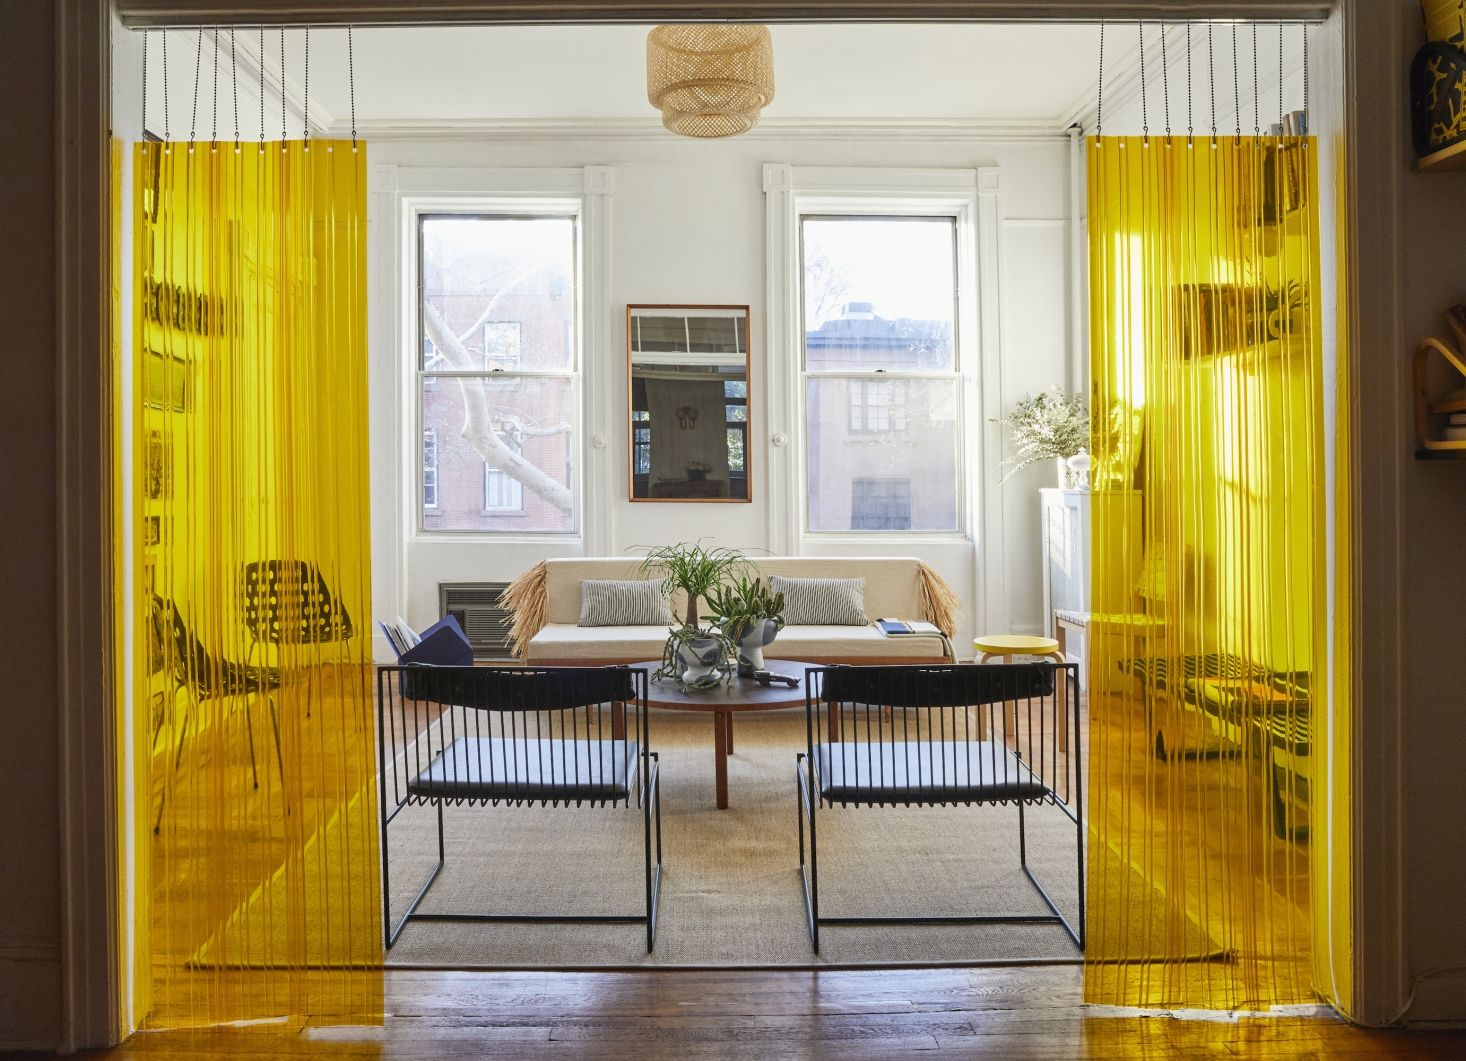 Good At Home With C. S. Valentin: French Eclecticism In Cobble Hill, Brooklyn